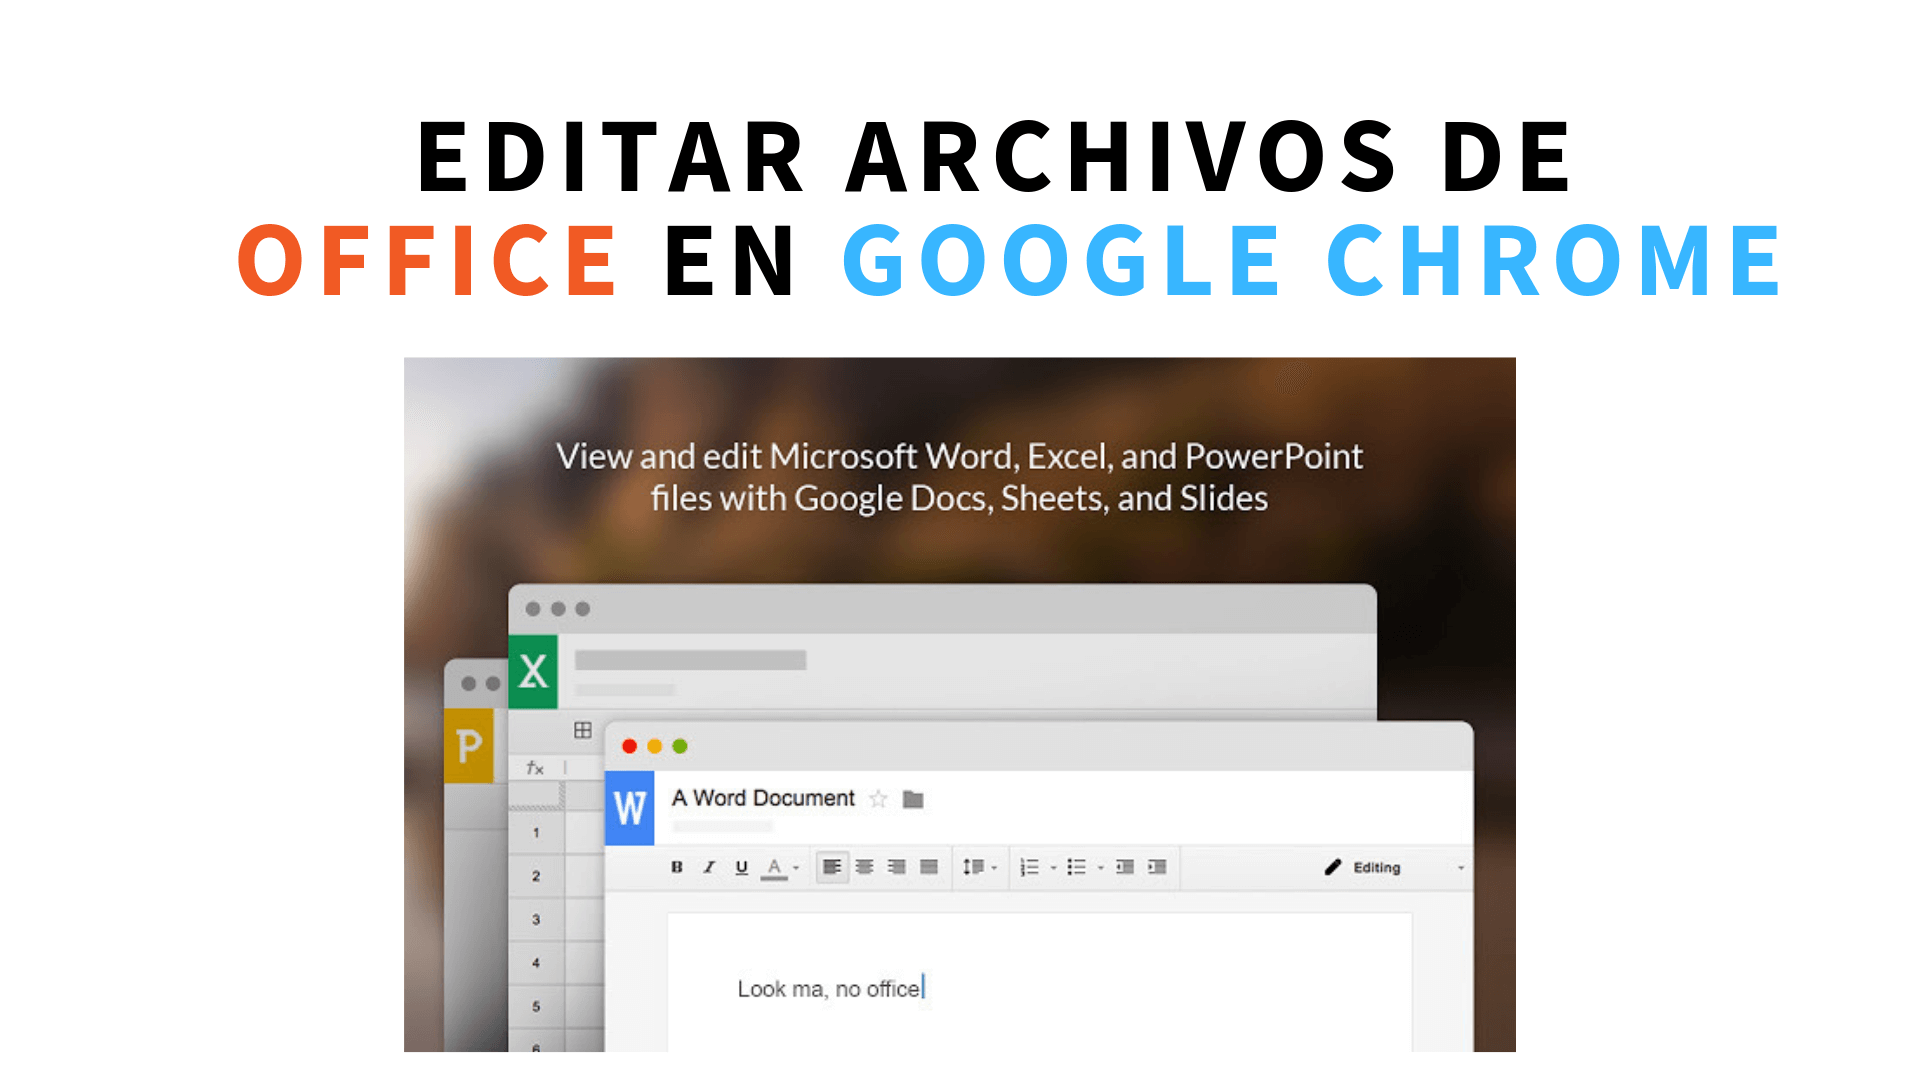 Editar archivos de Word, Excel o Powerpoint en Google Chrome sin instalar Office